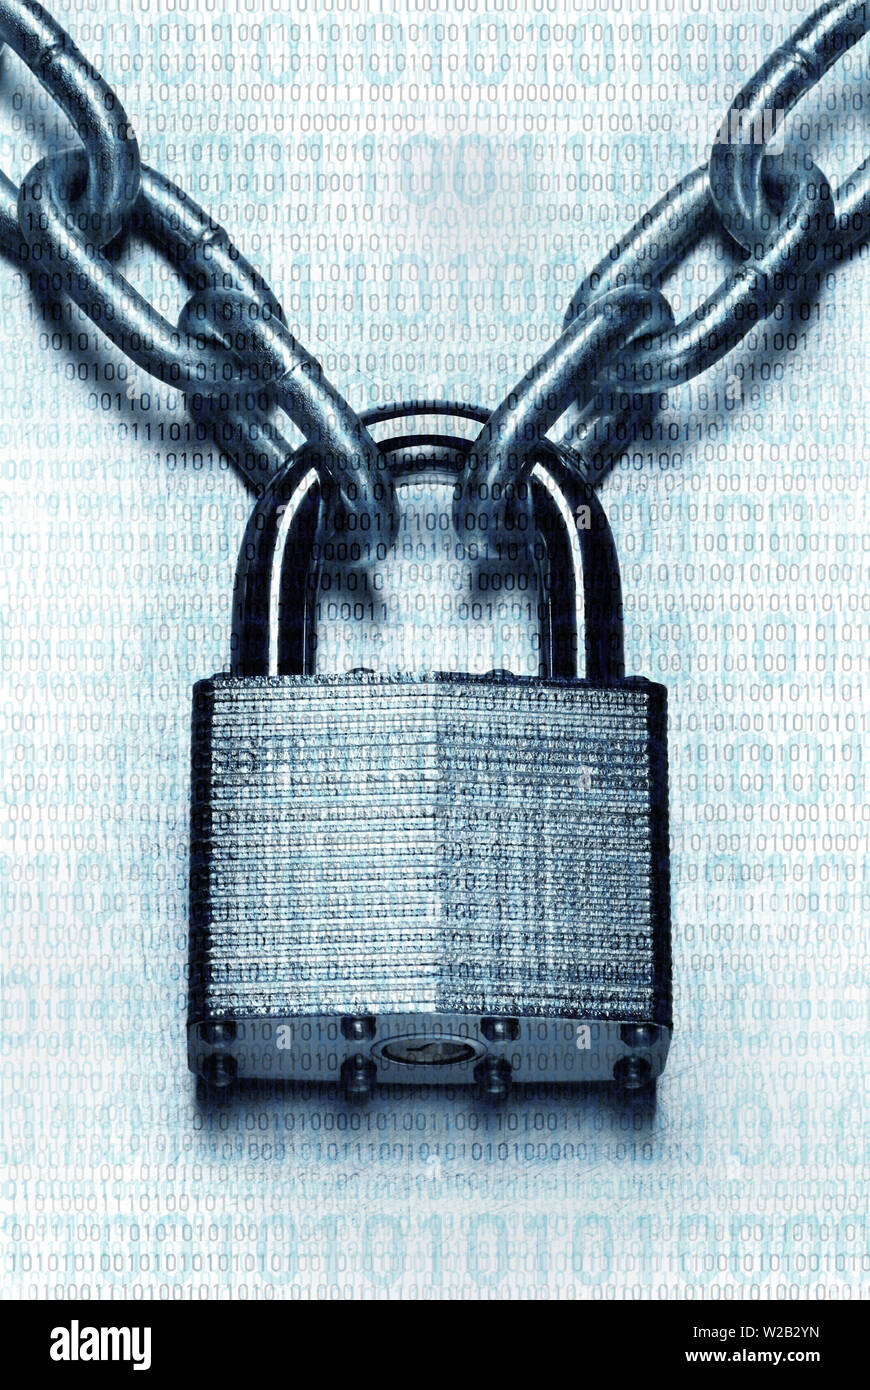 Impenetrable security concept. Closeup image of chain and locked padlock  on blue steel white background - Stock Image